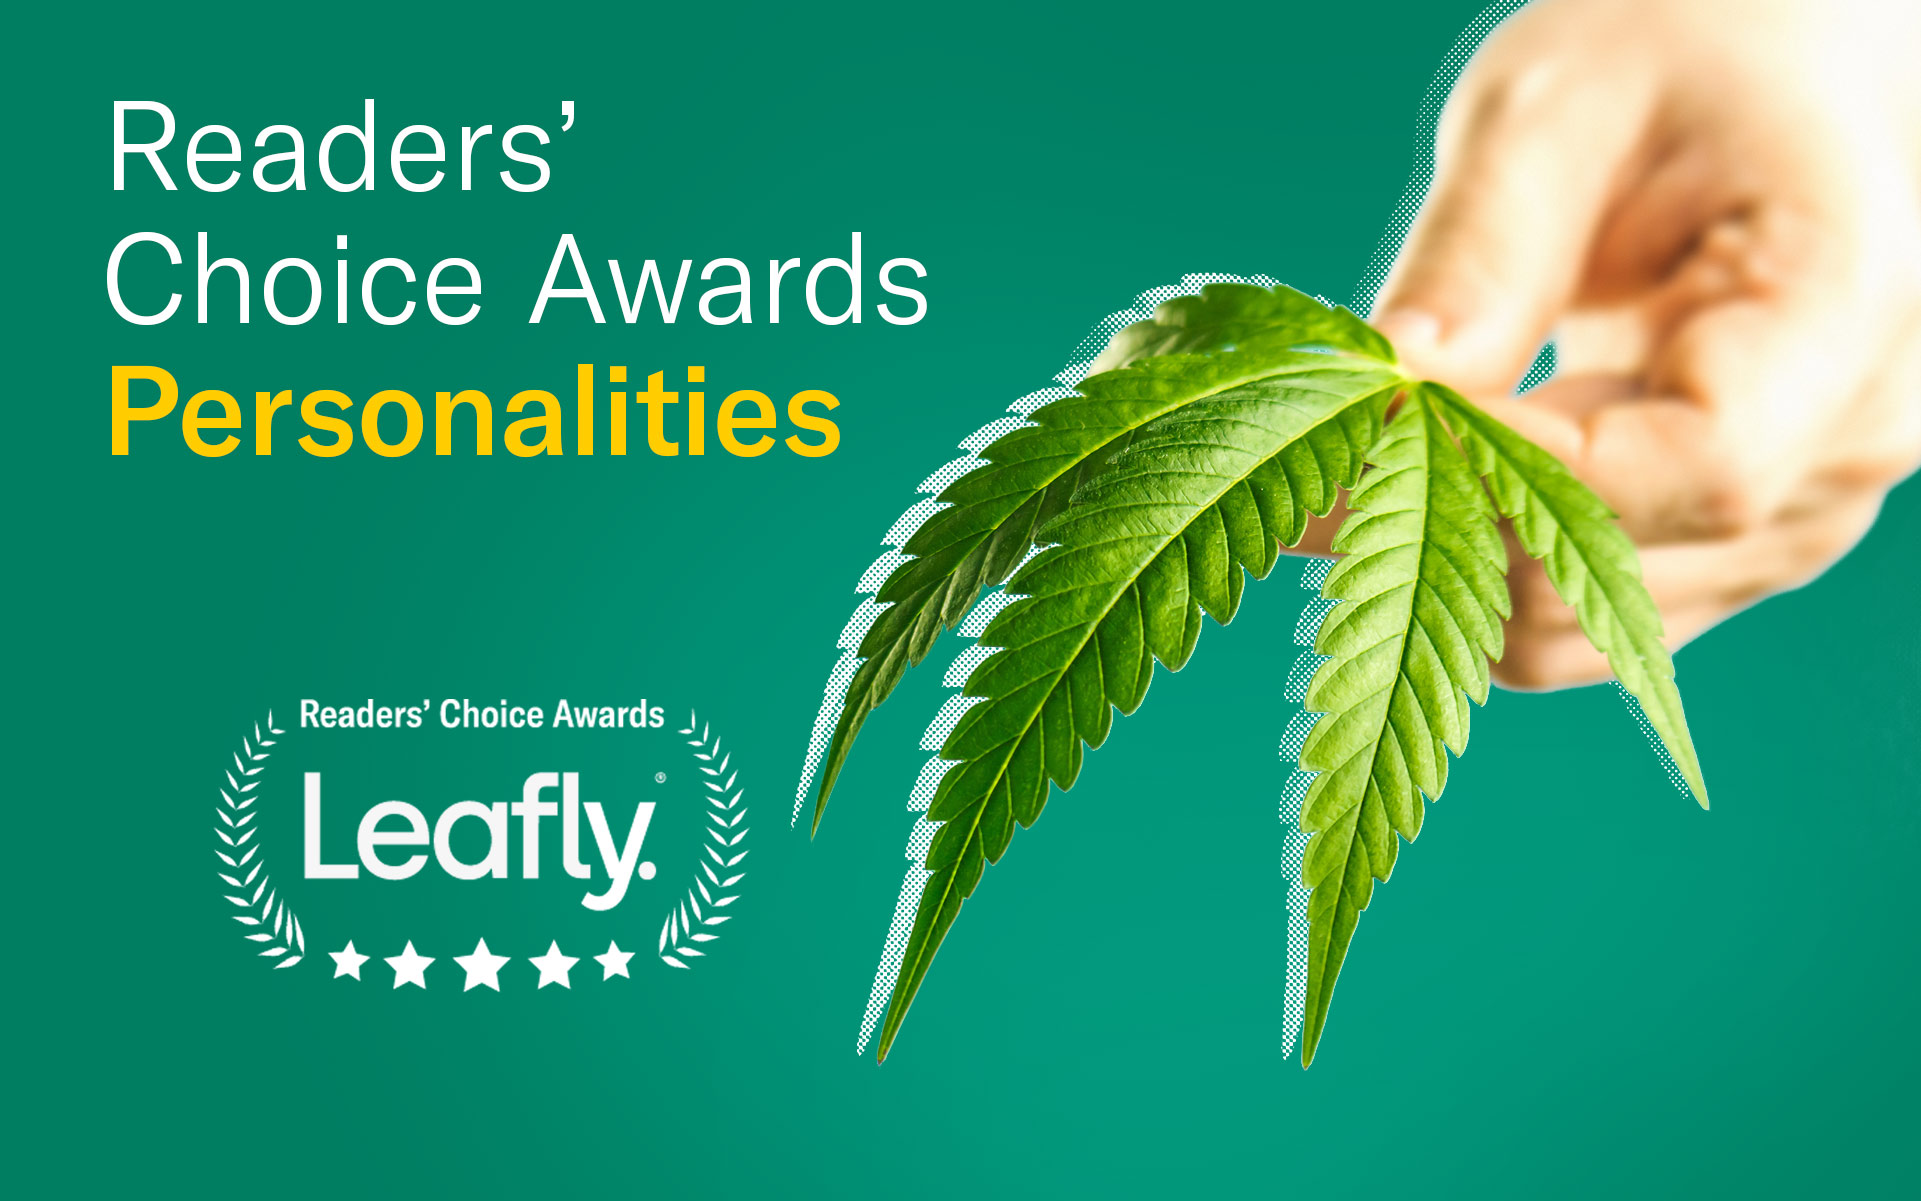 Leafly canada readers choice favourite cannabis personalities